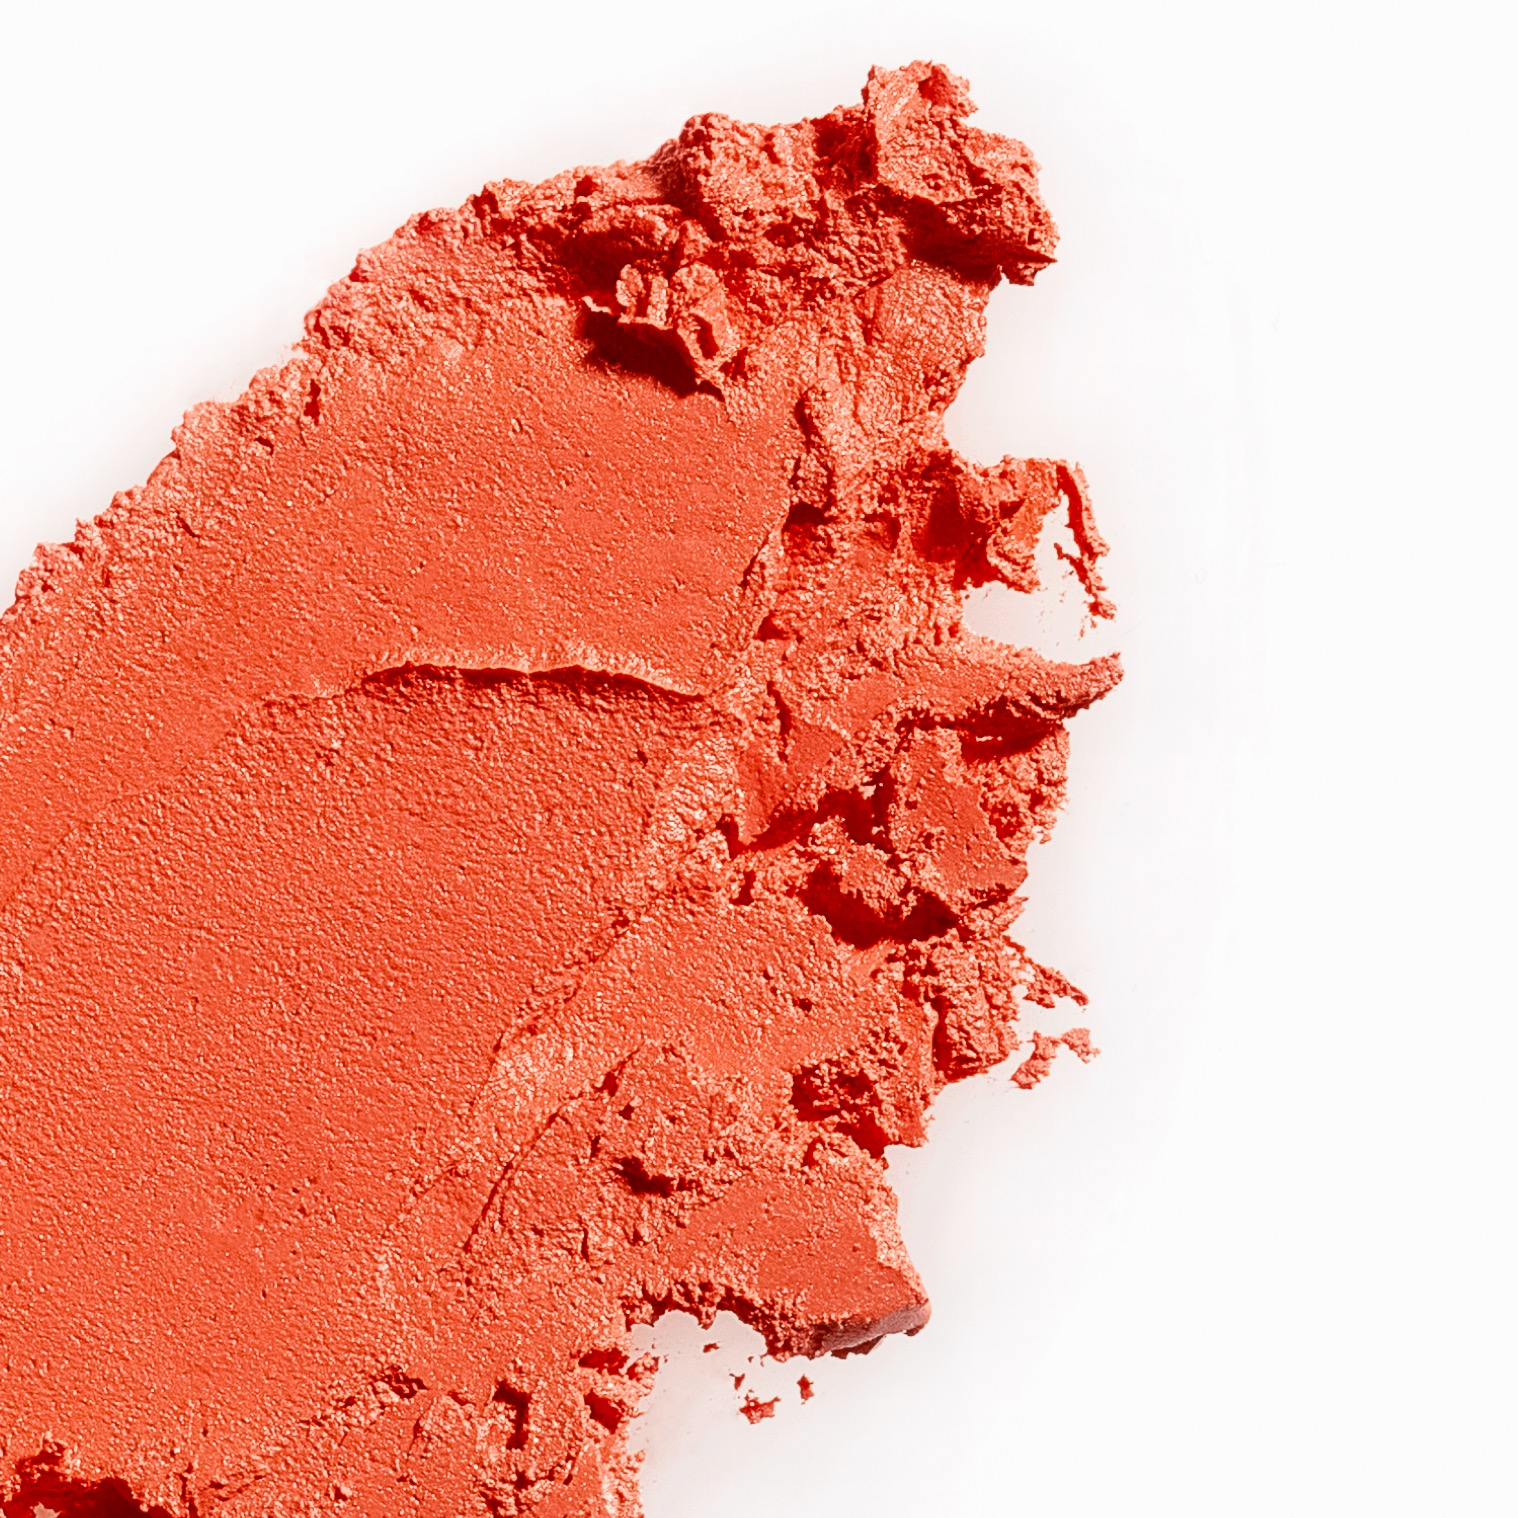 The 'Oasis' we see today is a result of trying hundreds of variations; the right hue of coral was not easy to formulate.